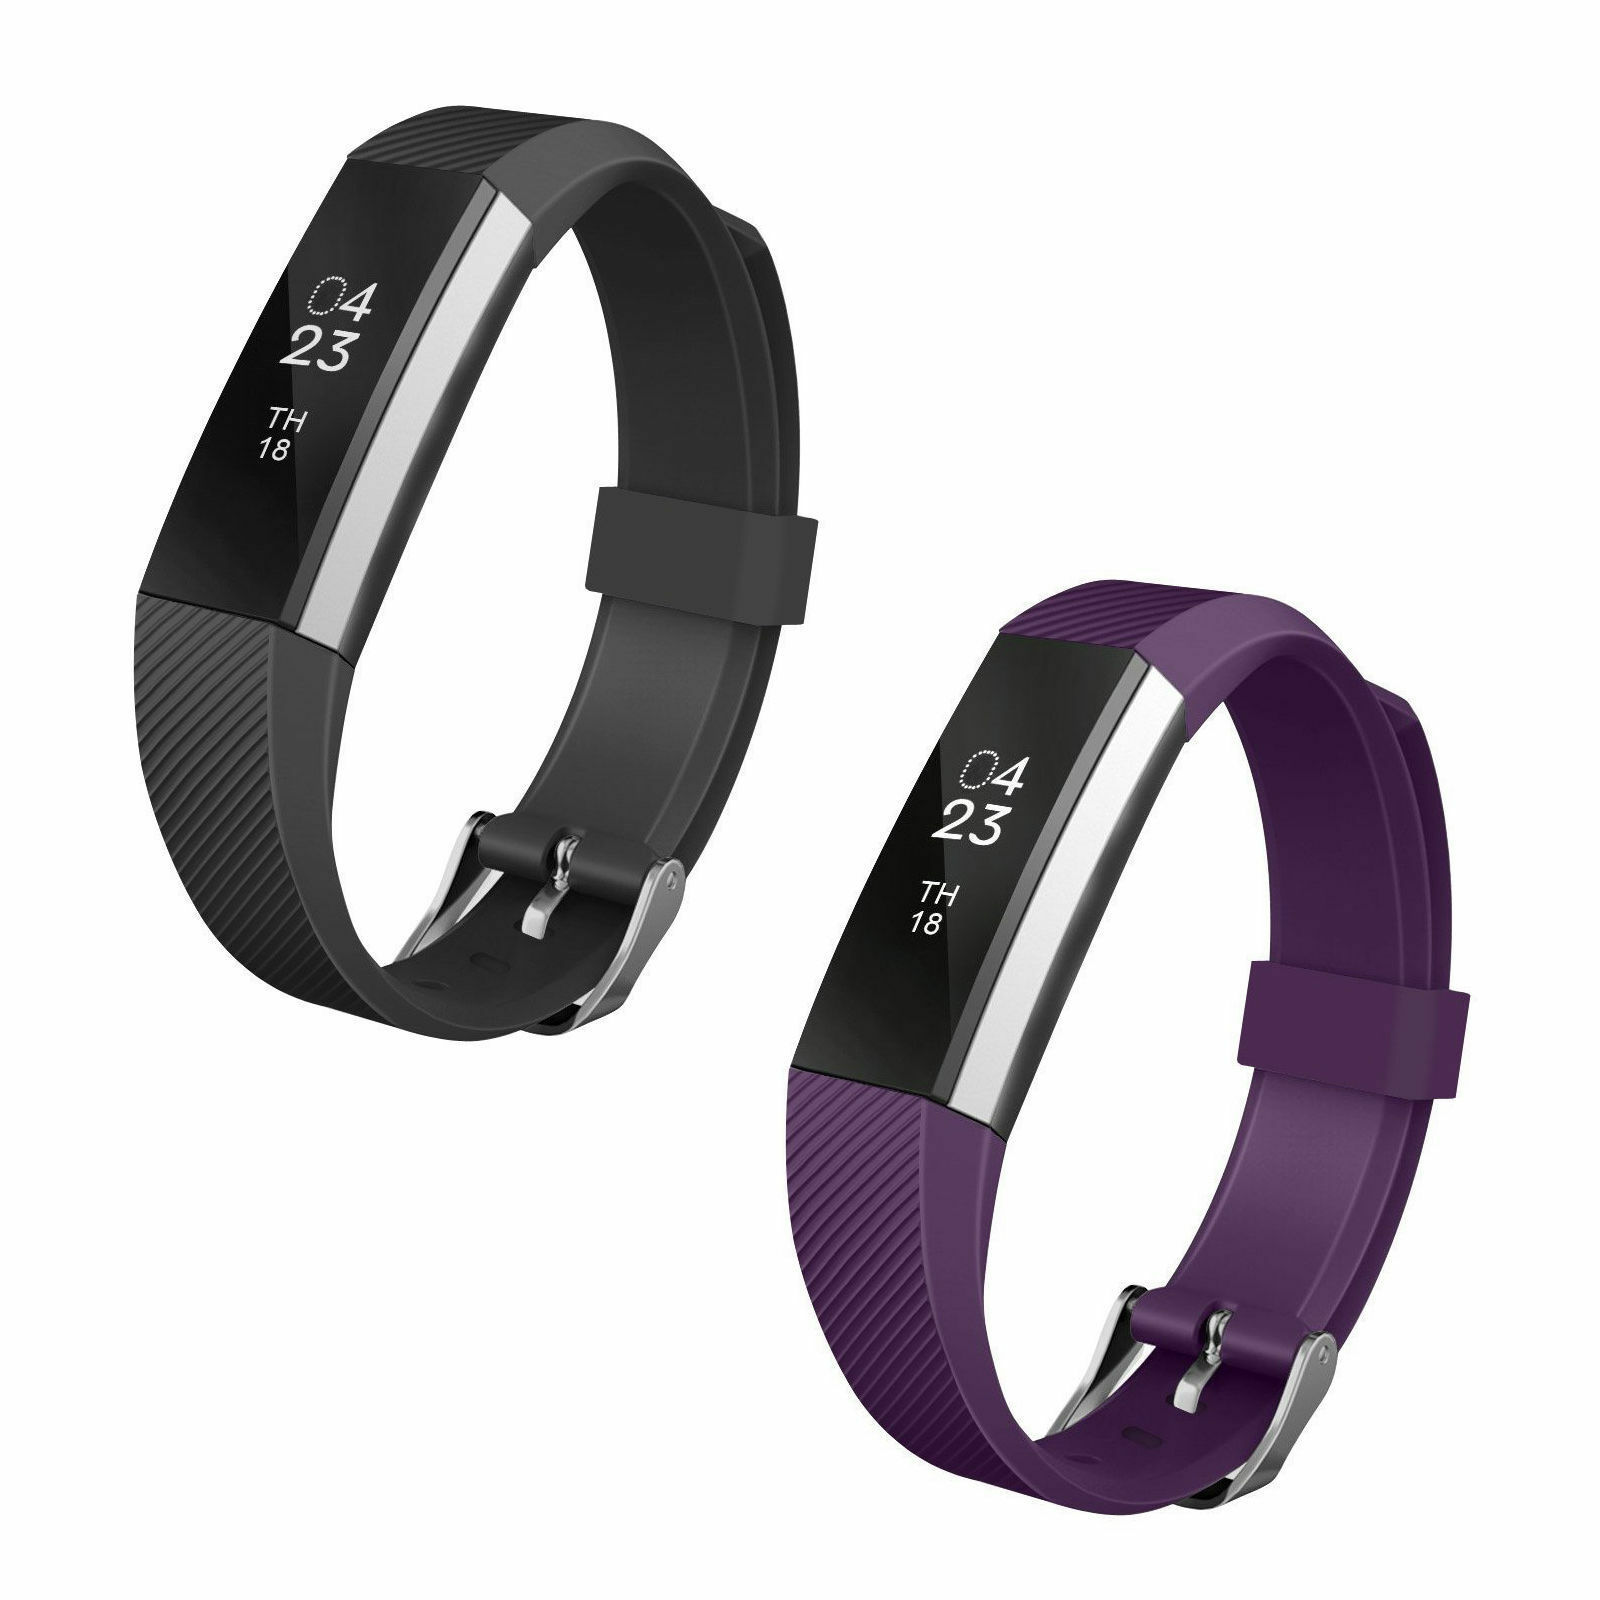 EEEKit Replacement Wrist Band Soft Silicon Strap Clasp Buckle For Fitbit Alta